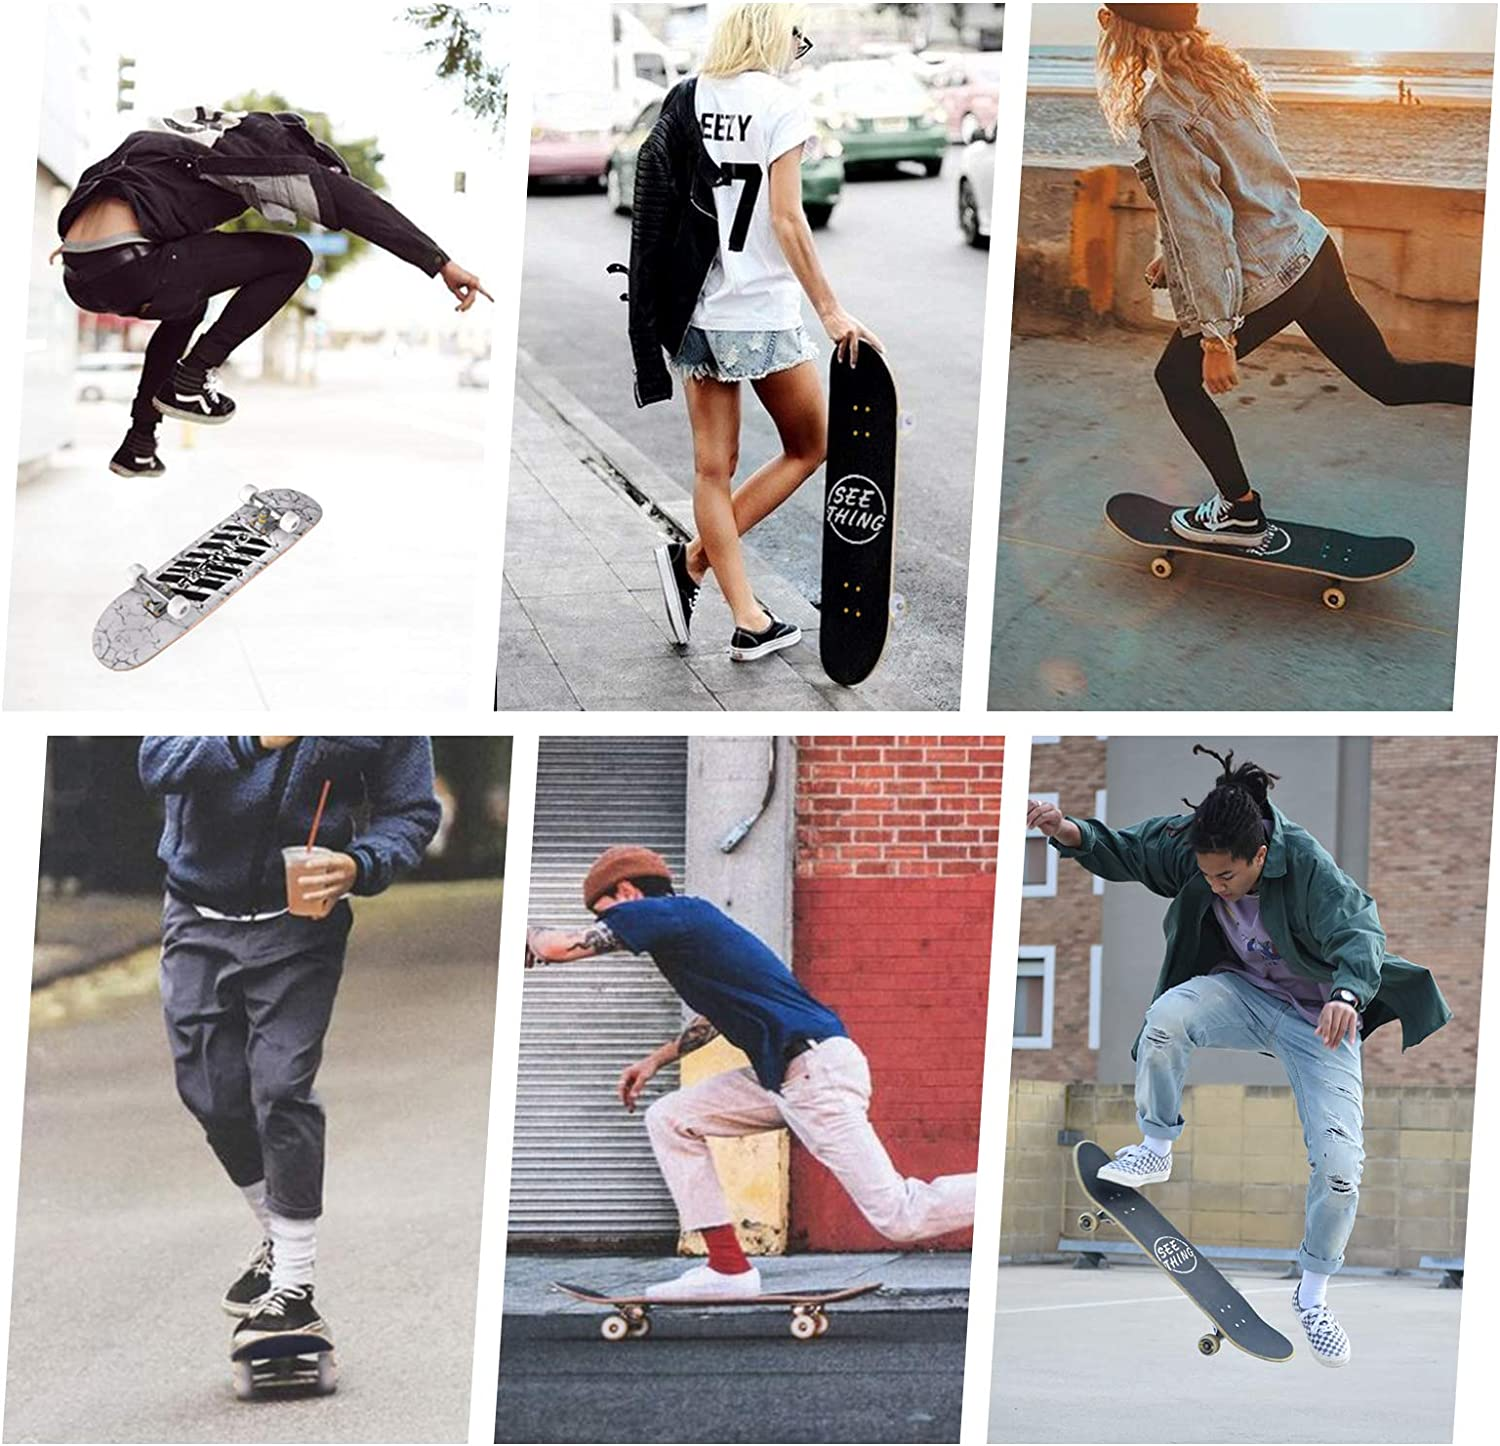 seething 31 Standard Skateboards for Beginners 7 Layer Canadian Maple Double Kick Concave Standard and Tricks Skateboards for Kids and Beginners